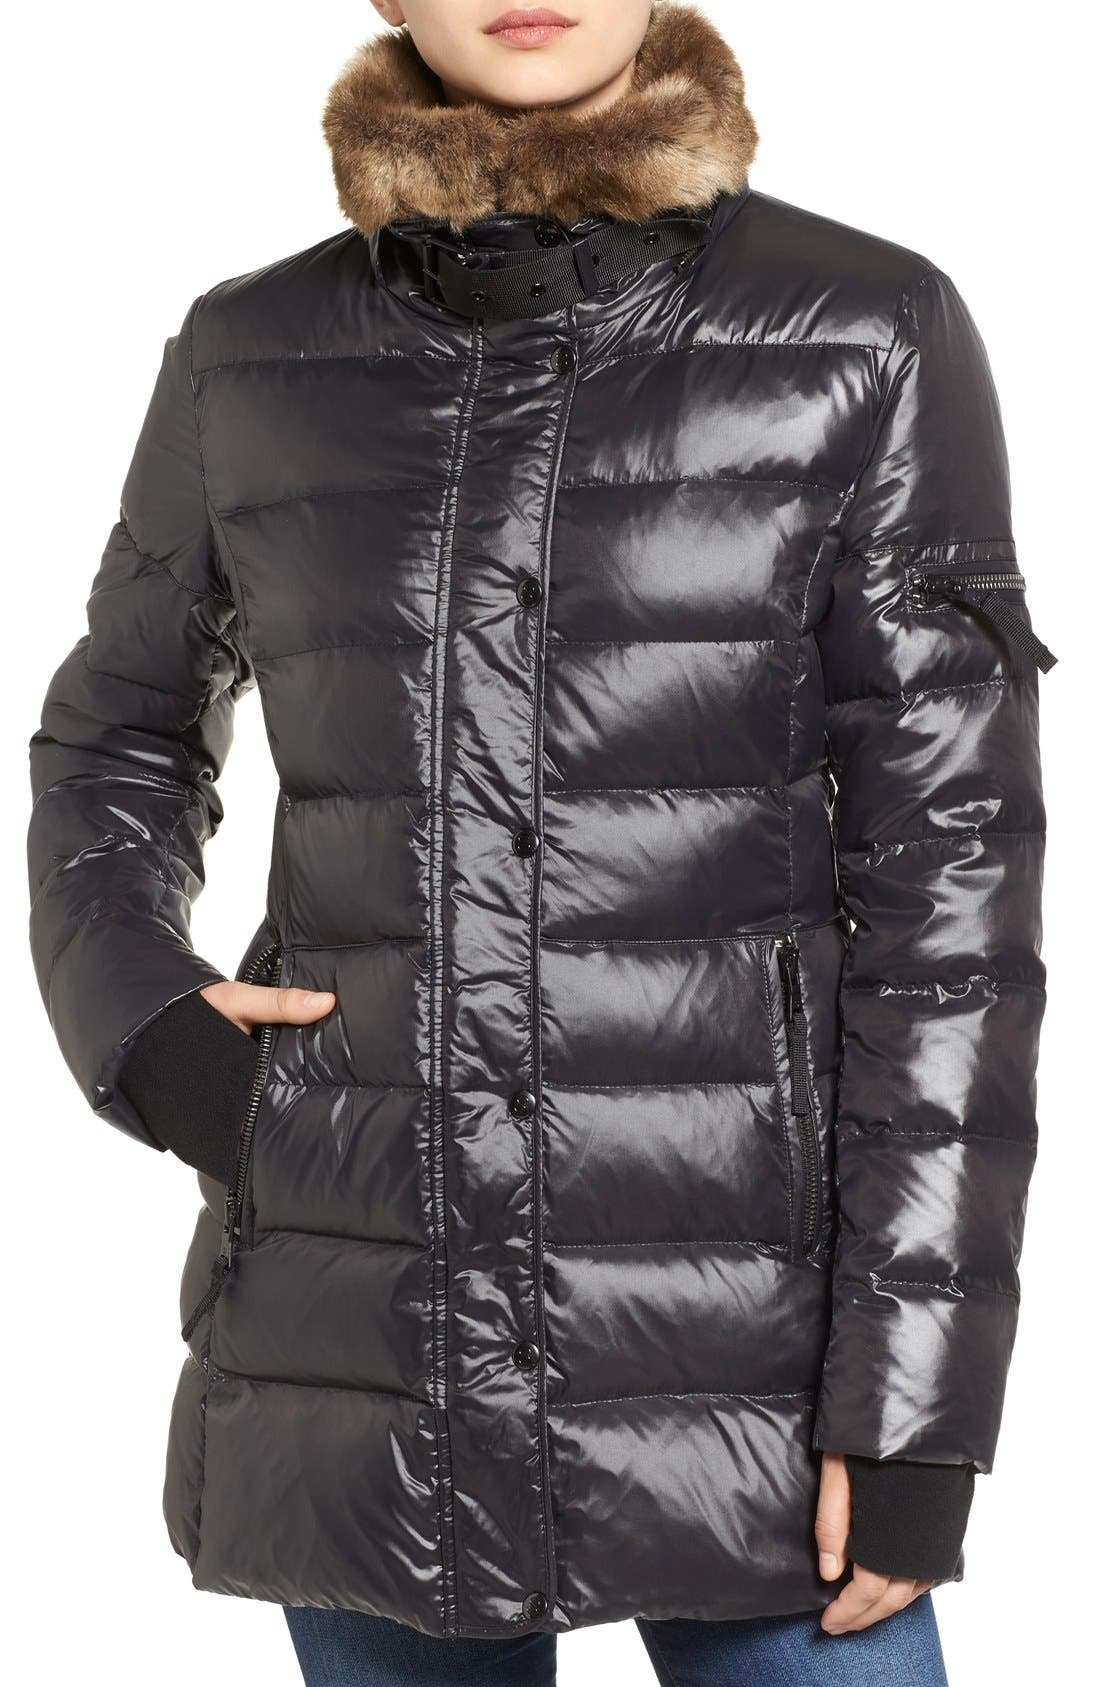 'Chelsea' Gloss Down Jacket with Removable Hood and Faux Fur Trim,                             Alternate thumbnail 4, color,                             Jet